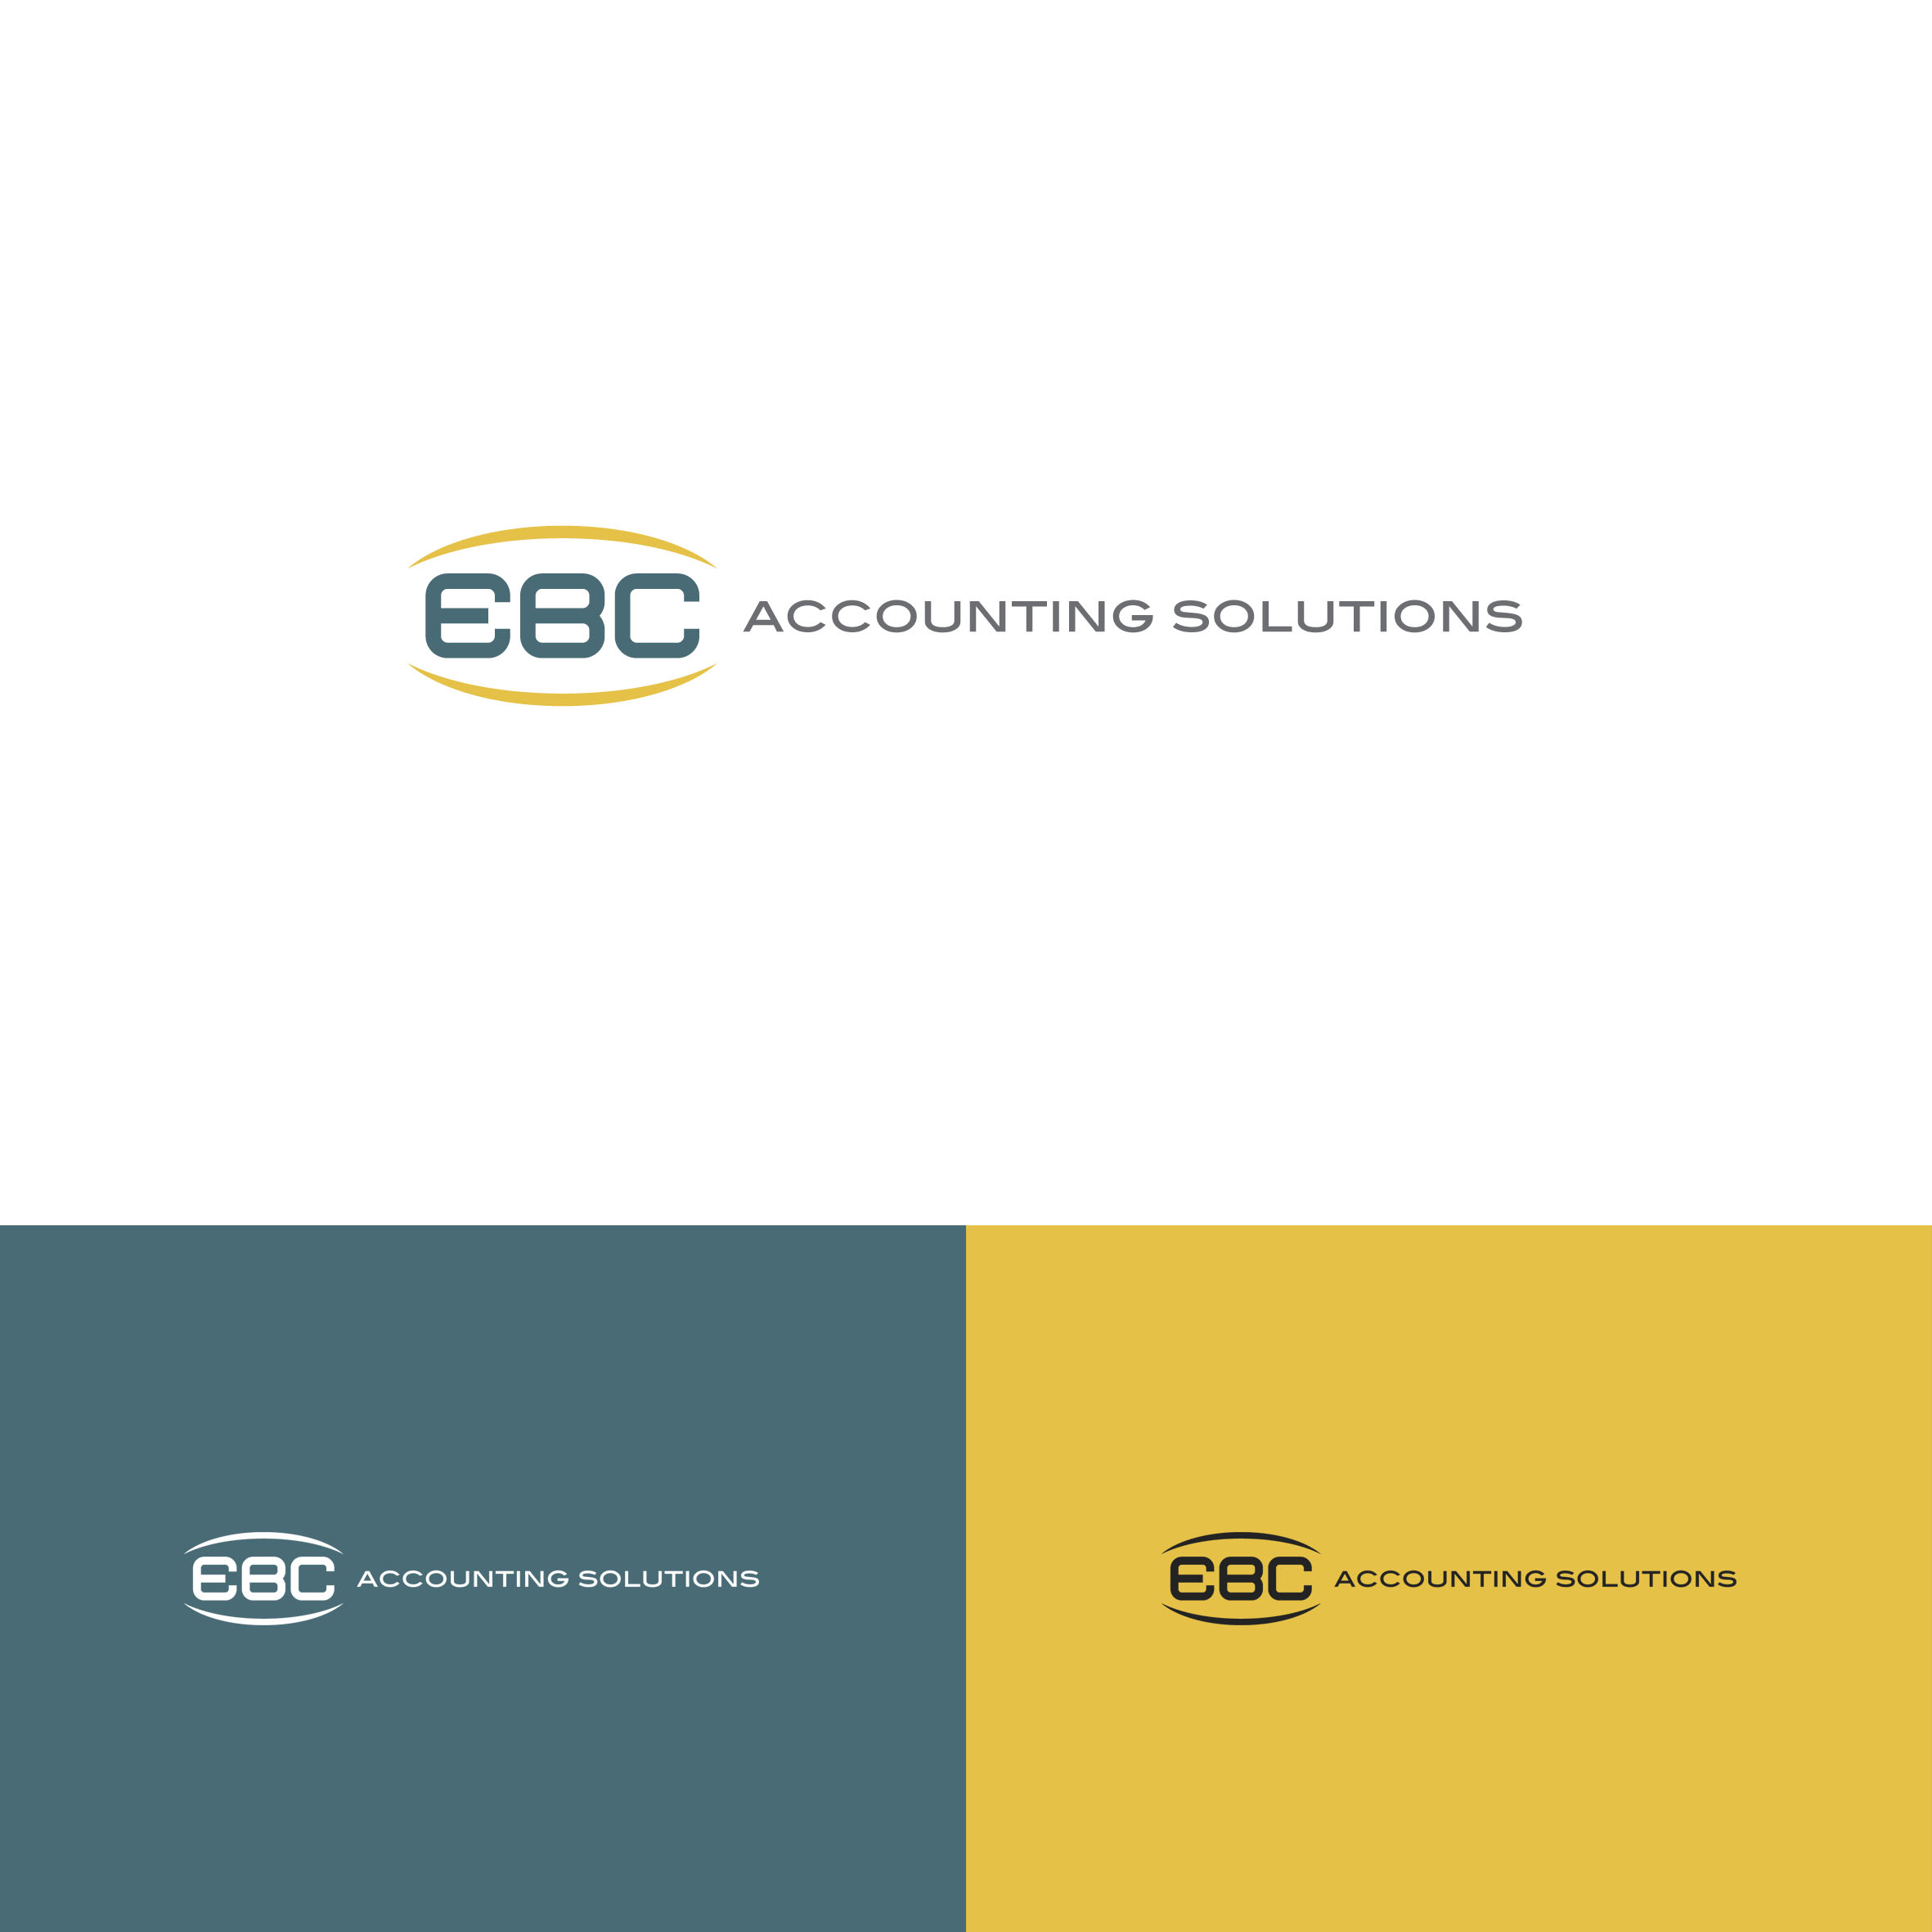 Logo Design by tanganpanas - Entry No. 129 in the Logo Design Contest New Logo Design for EBC Accounting Solutions.